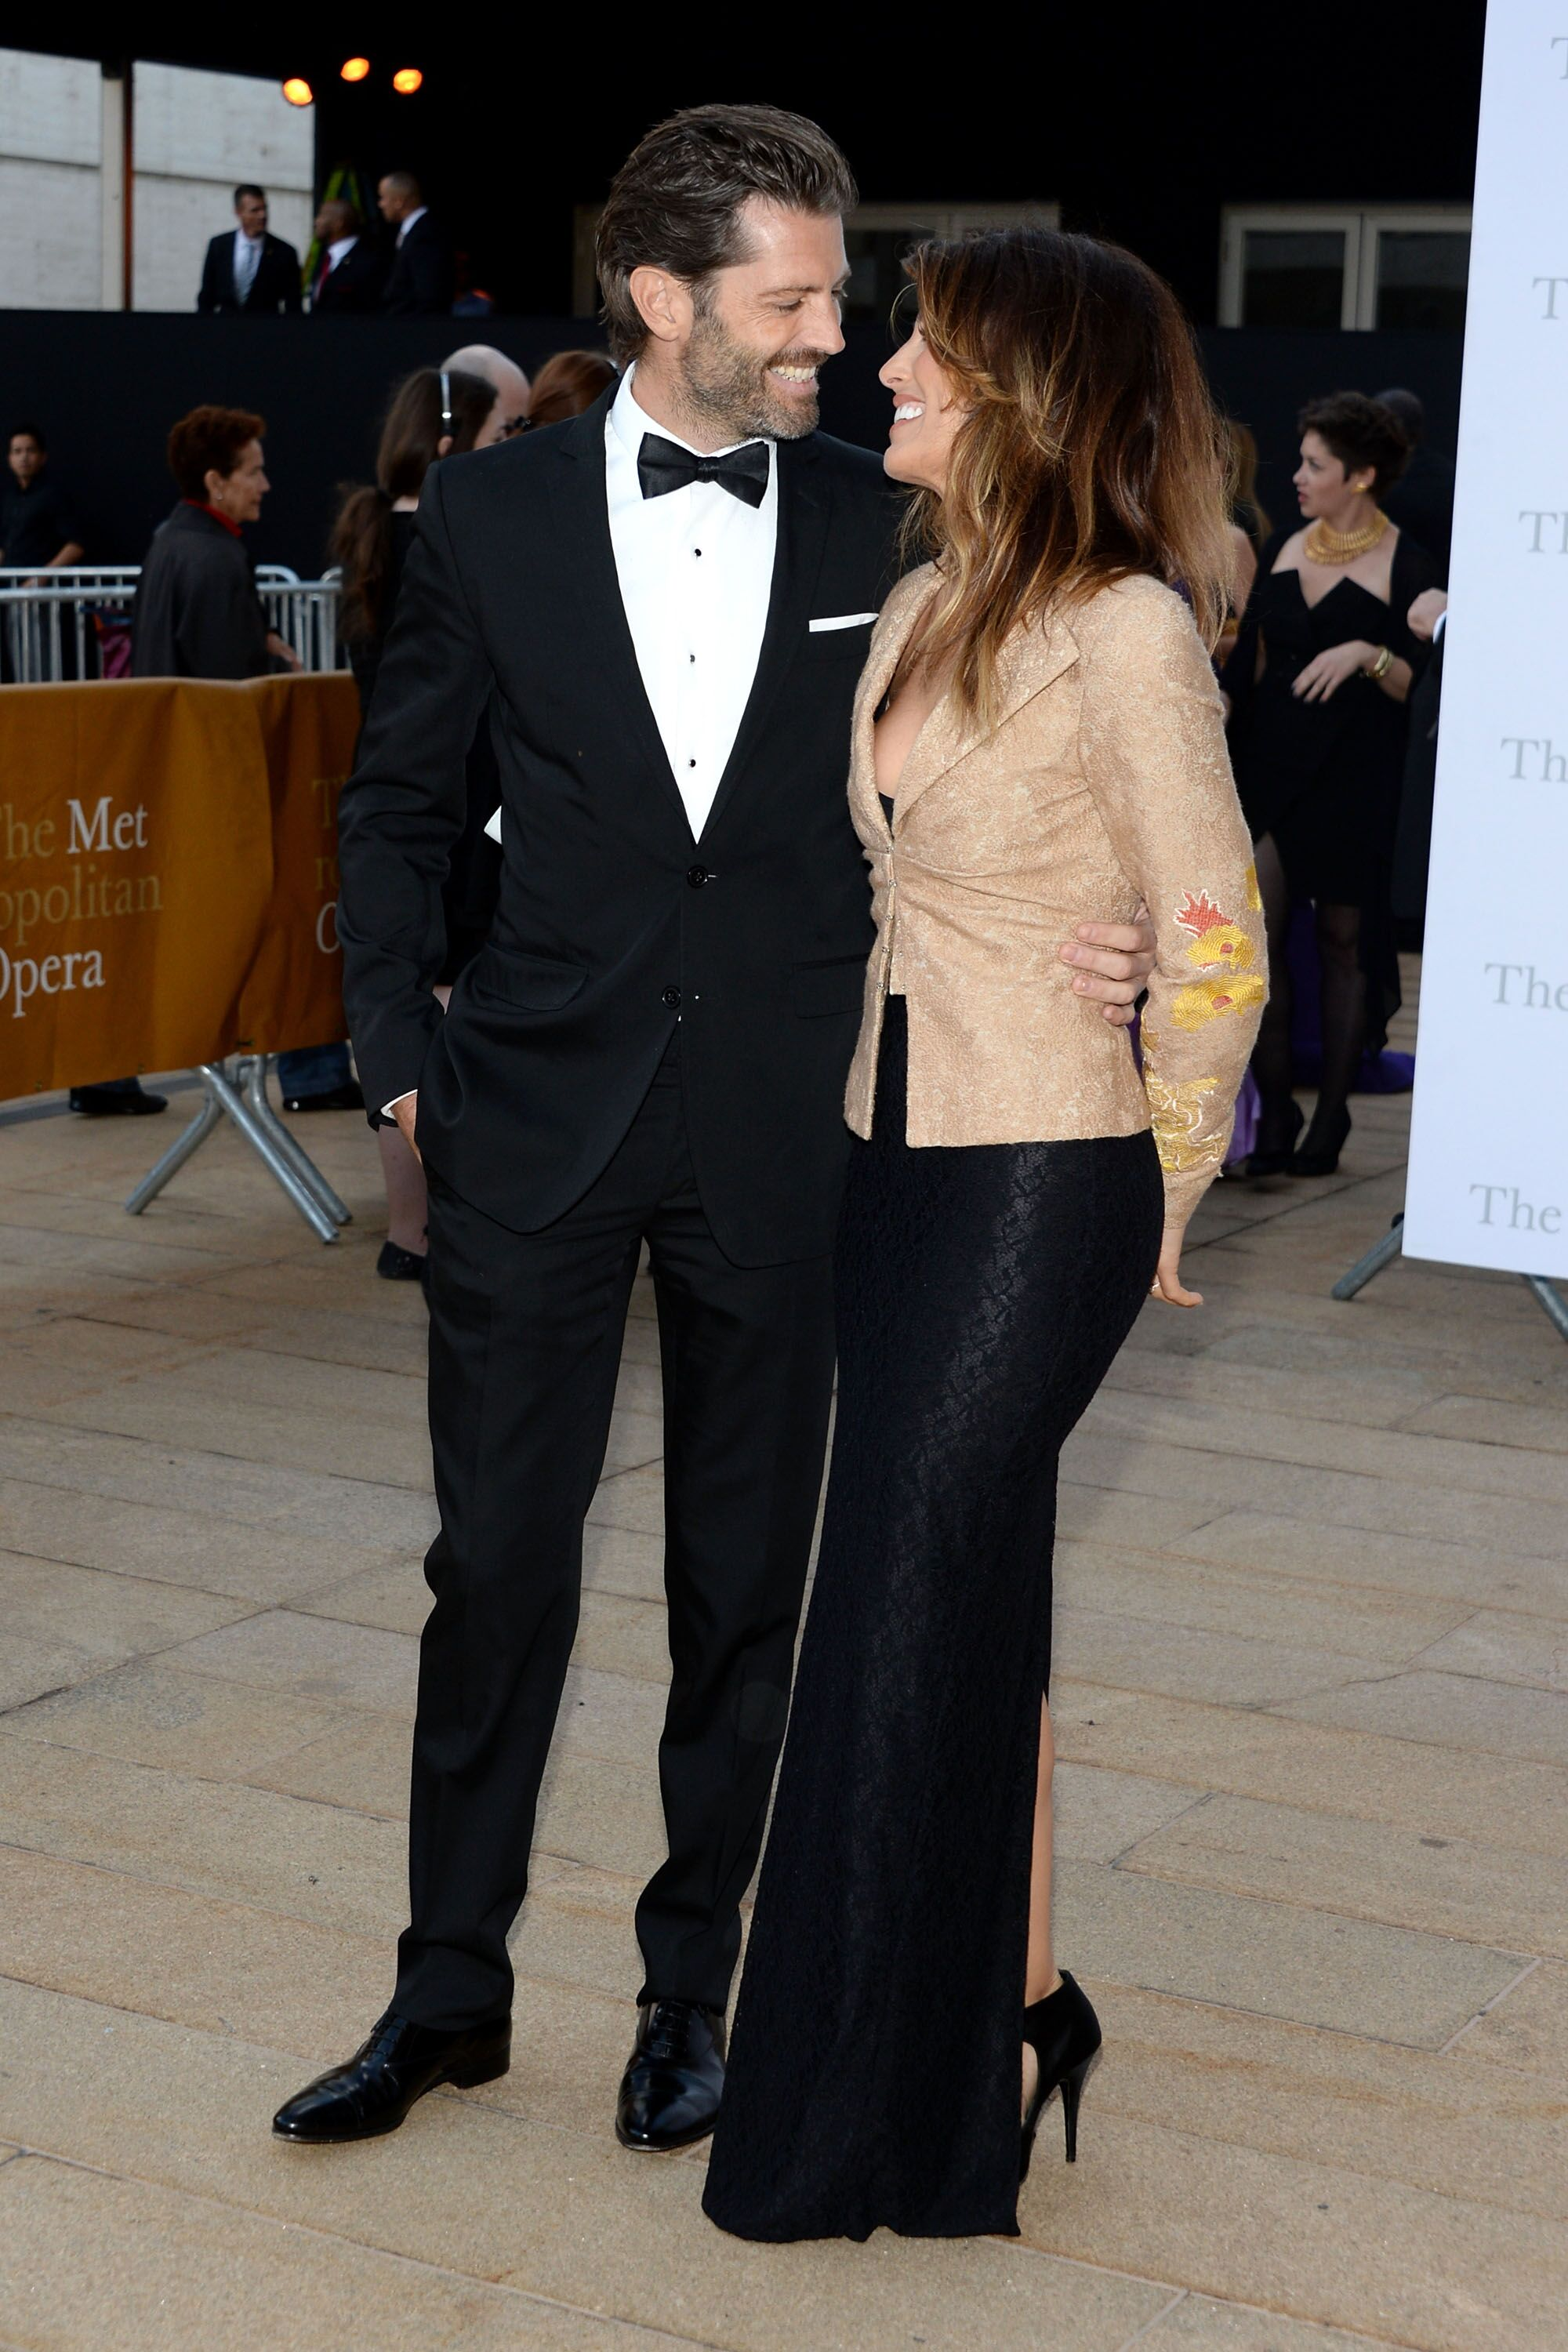 Model Louis Dowler (L) and actress Jennifer Esposito attend the Metropolitan Opera Season Opening | Getty Images